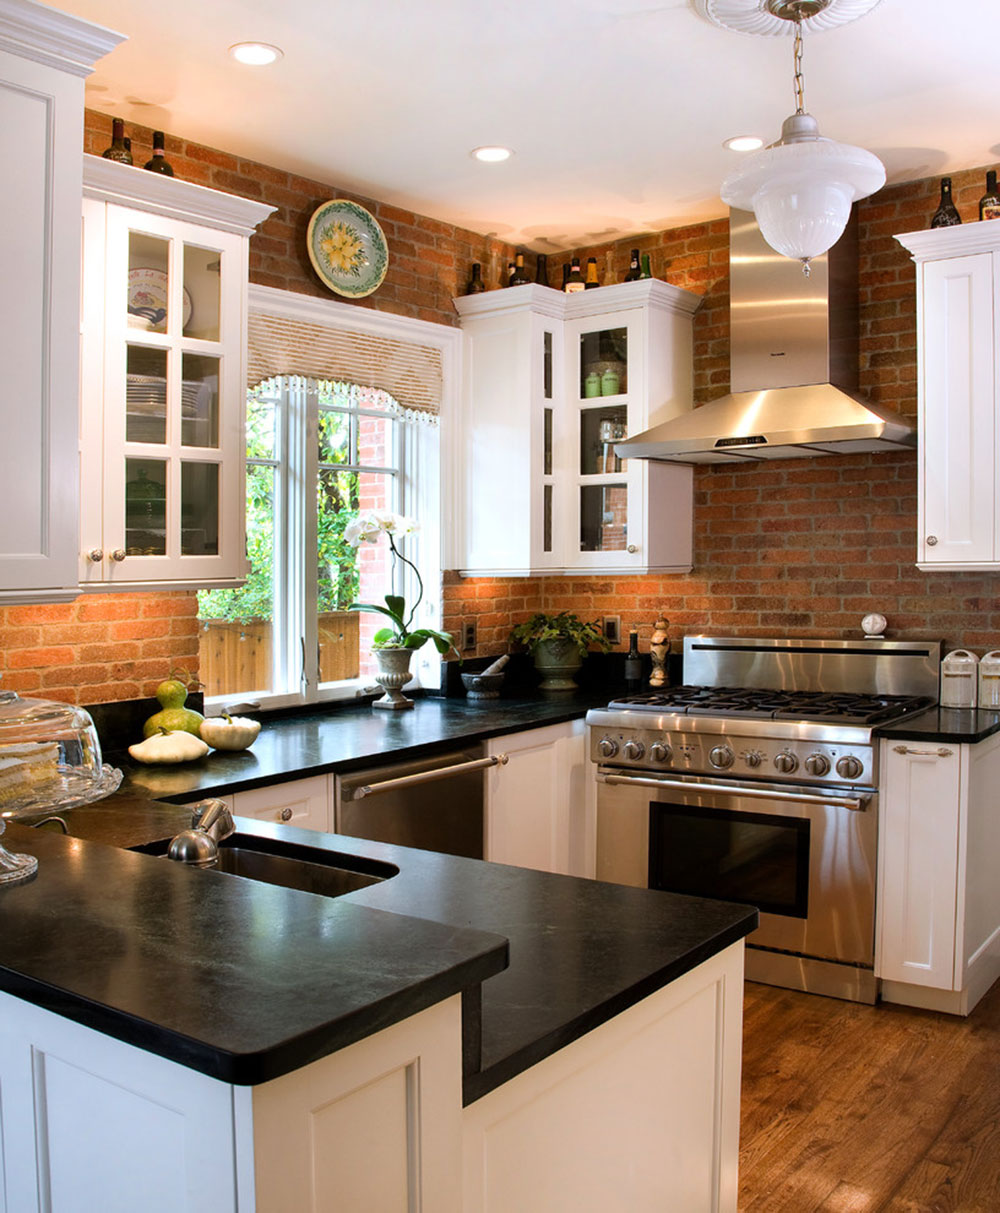 Backsplash Kitchen Modern Modern Brick Backsplash Kitchen Ideas